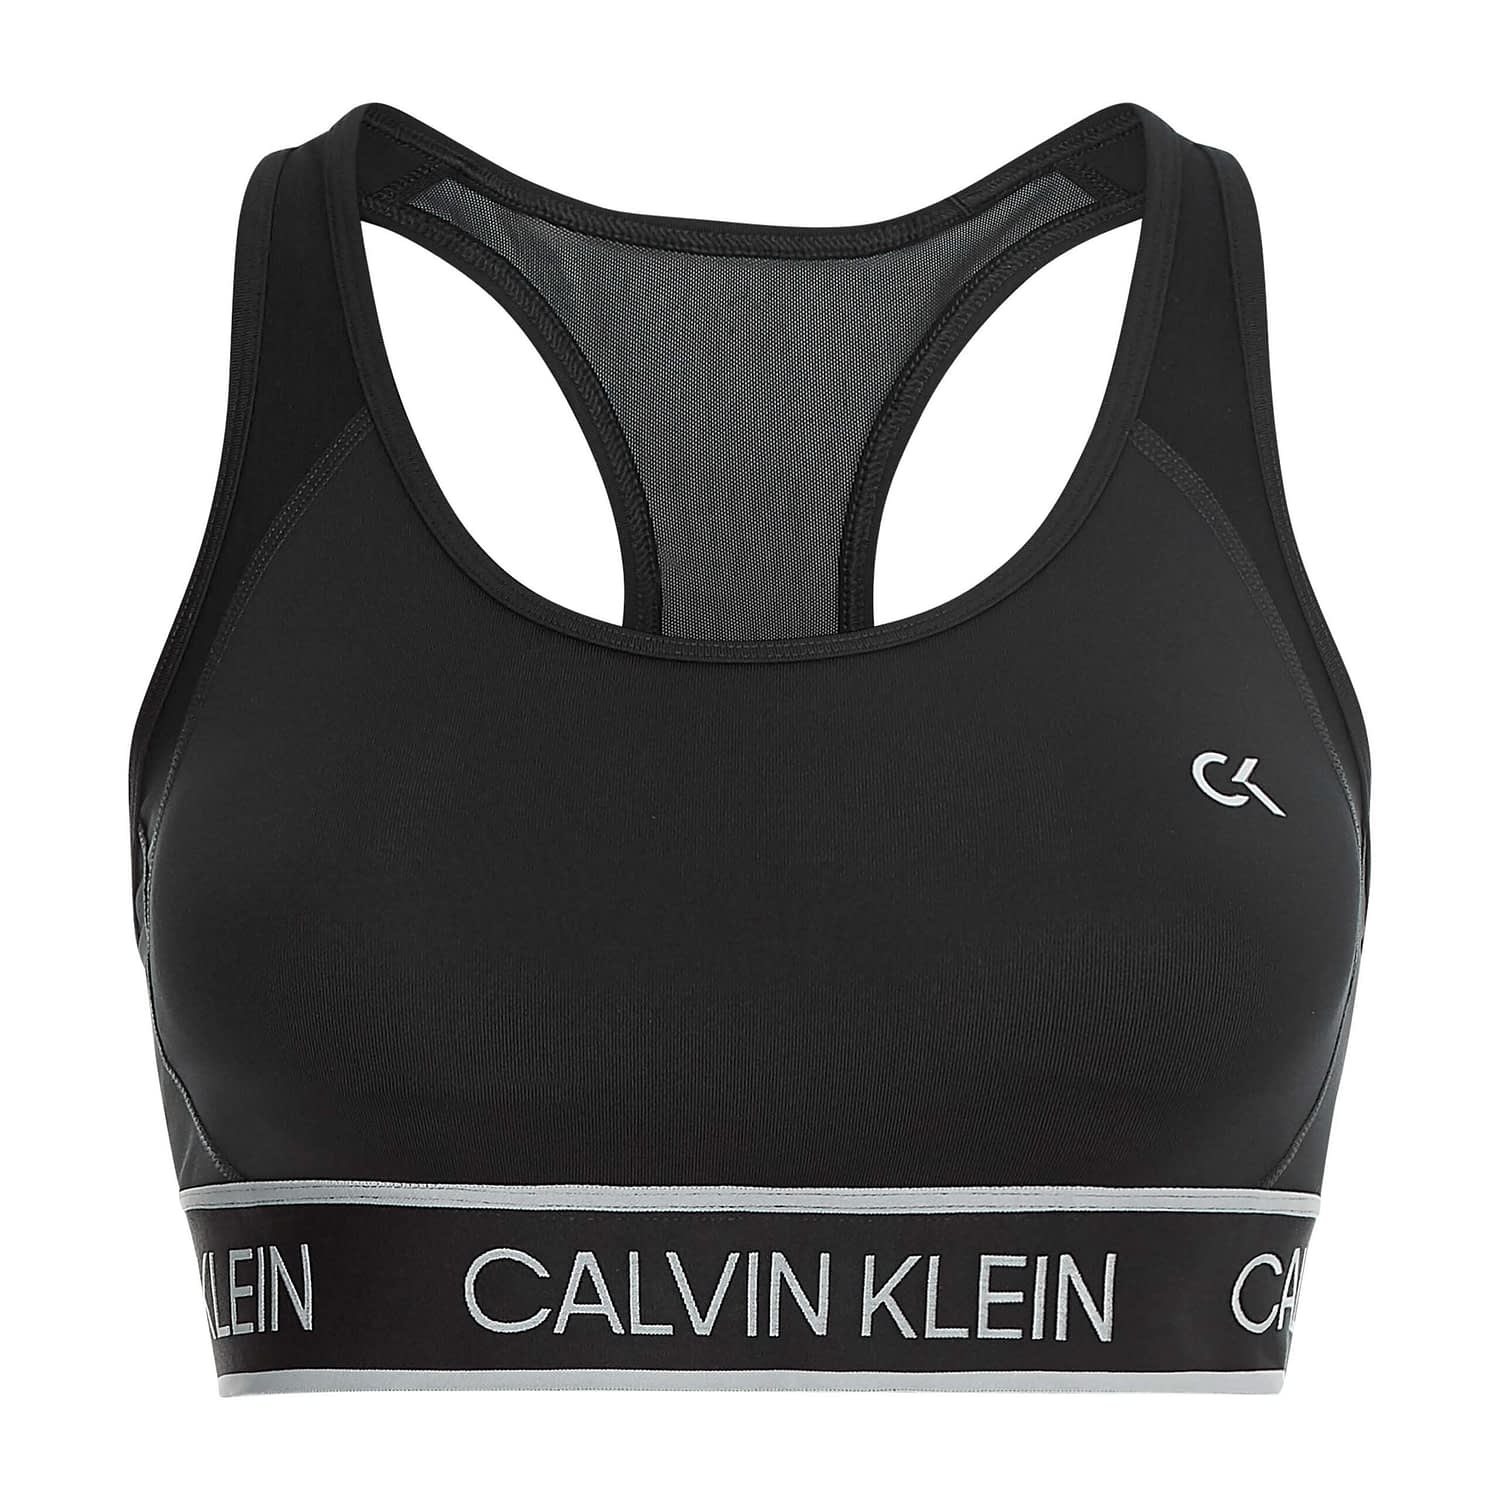 Calvin Klein Medium Support Bra Zwart 00GWS1K143-007 main